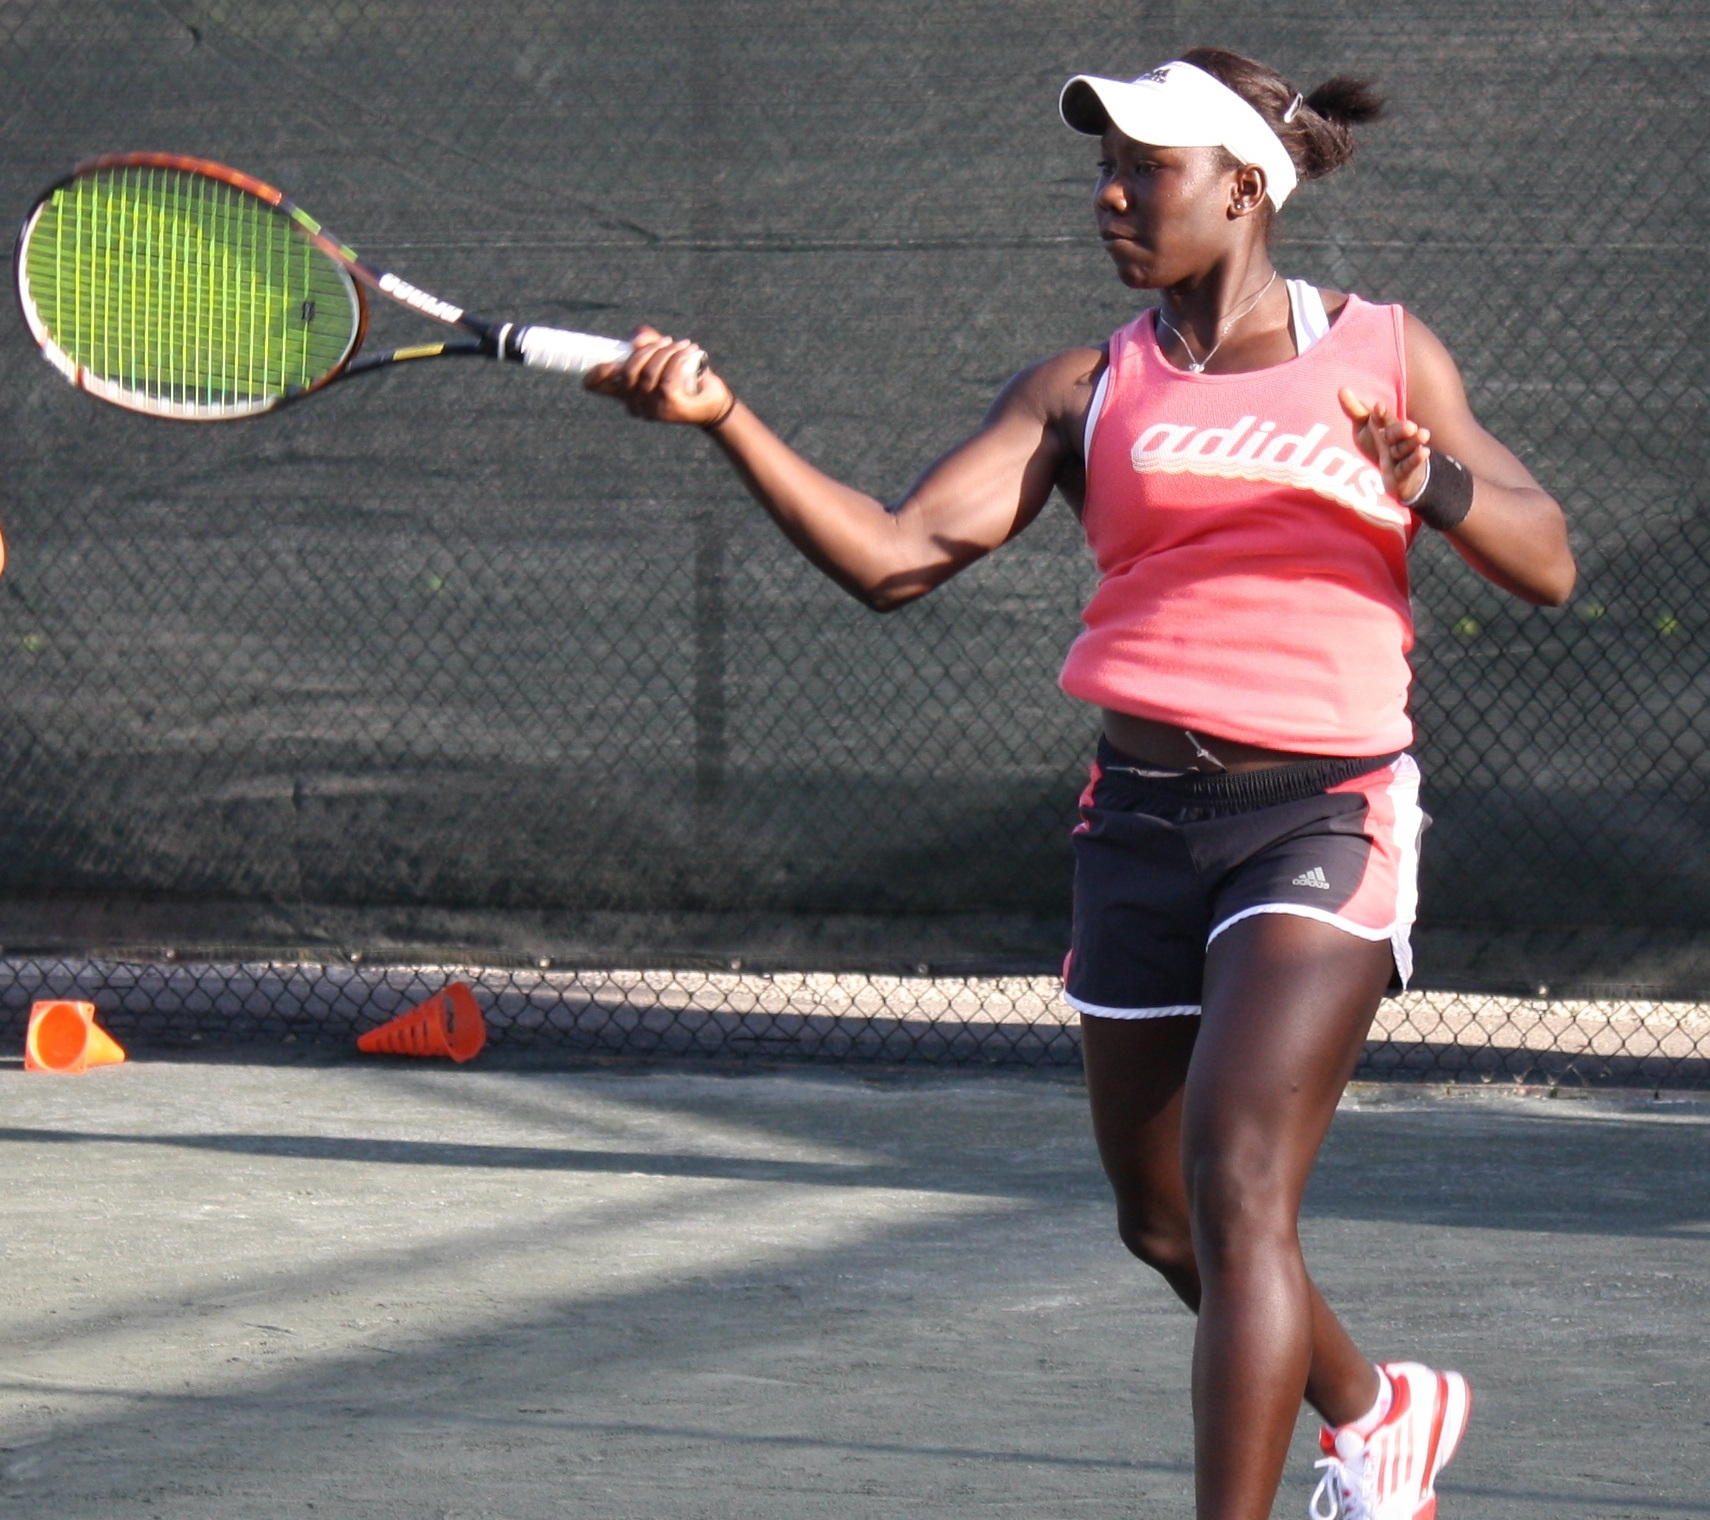 university of texas - Breaunna Addison (Boca Raton, Florida)Blue-Chip Recruit - #2 on TennisRecruitingNCAA D1 National Championships - SemifinalistPlantation ITF - Singles & Doubles Championdef. Kristyna Pliskova (#94 WTA Ranking)